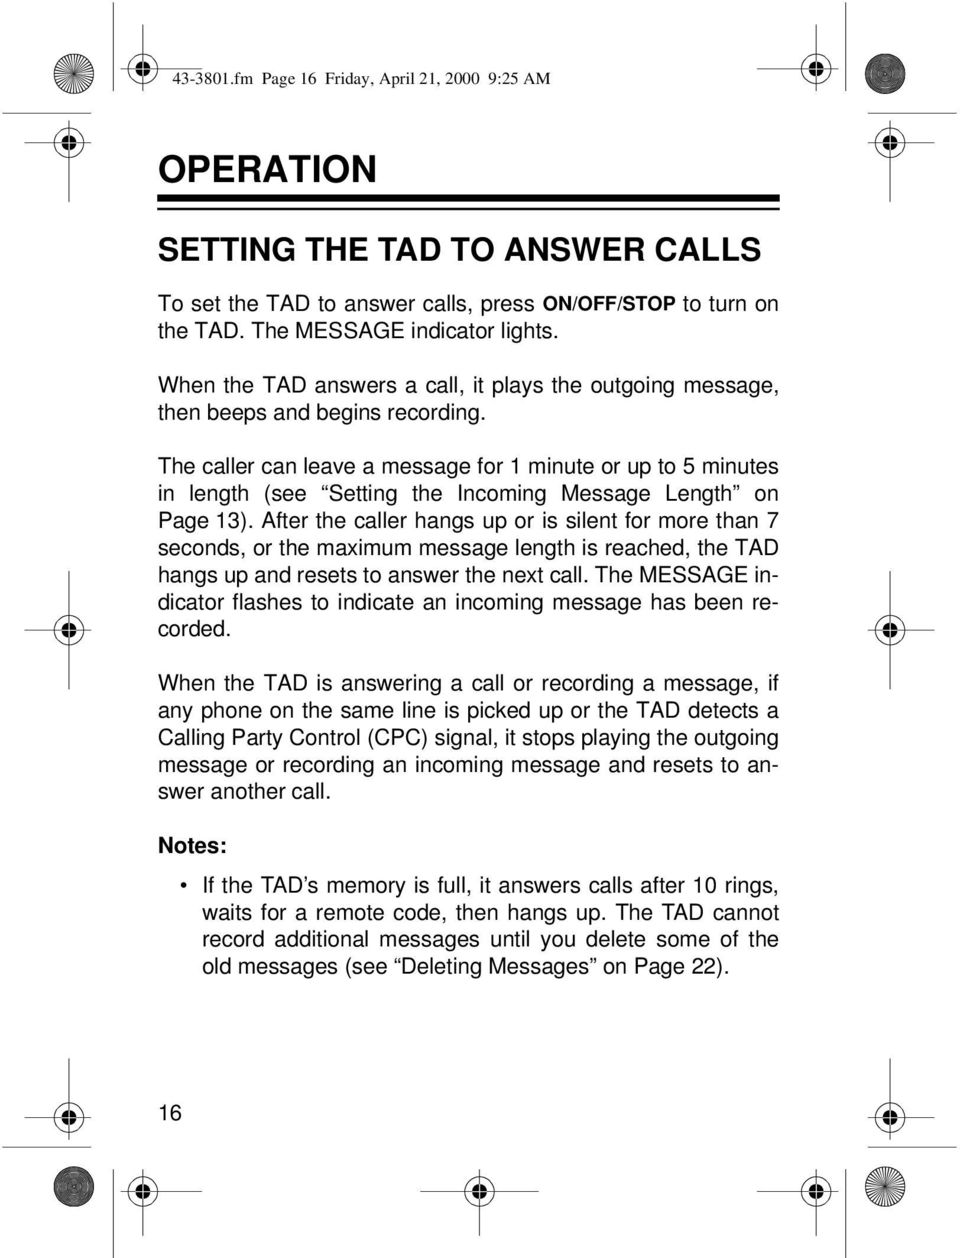 The caller can leave a message for 1 minute or up to 5 minutes in length (see Setting the Incoming Message Length on Page 13).